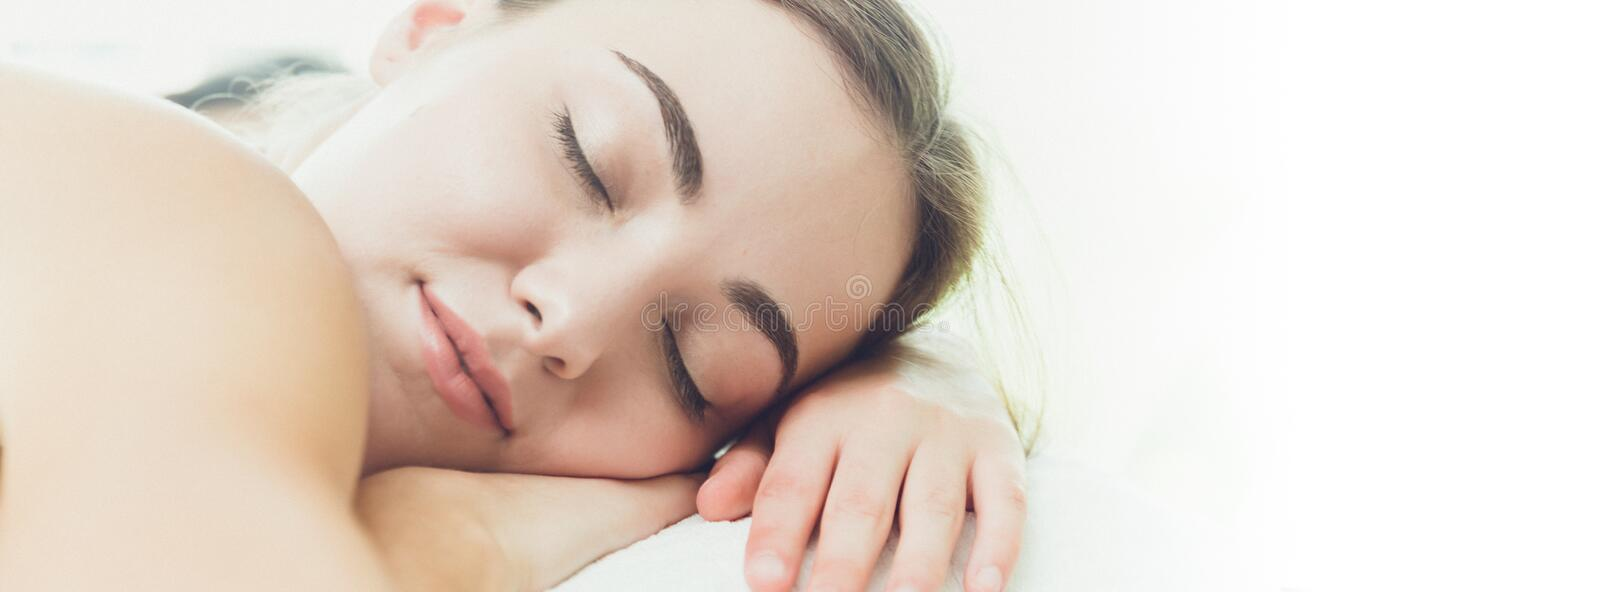 Sleeping beautiful woman snoring clinic wide for website banner stock photo